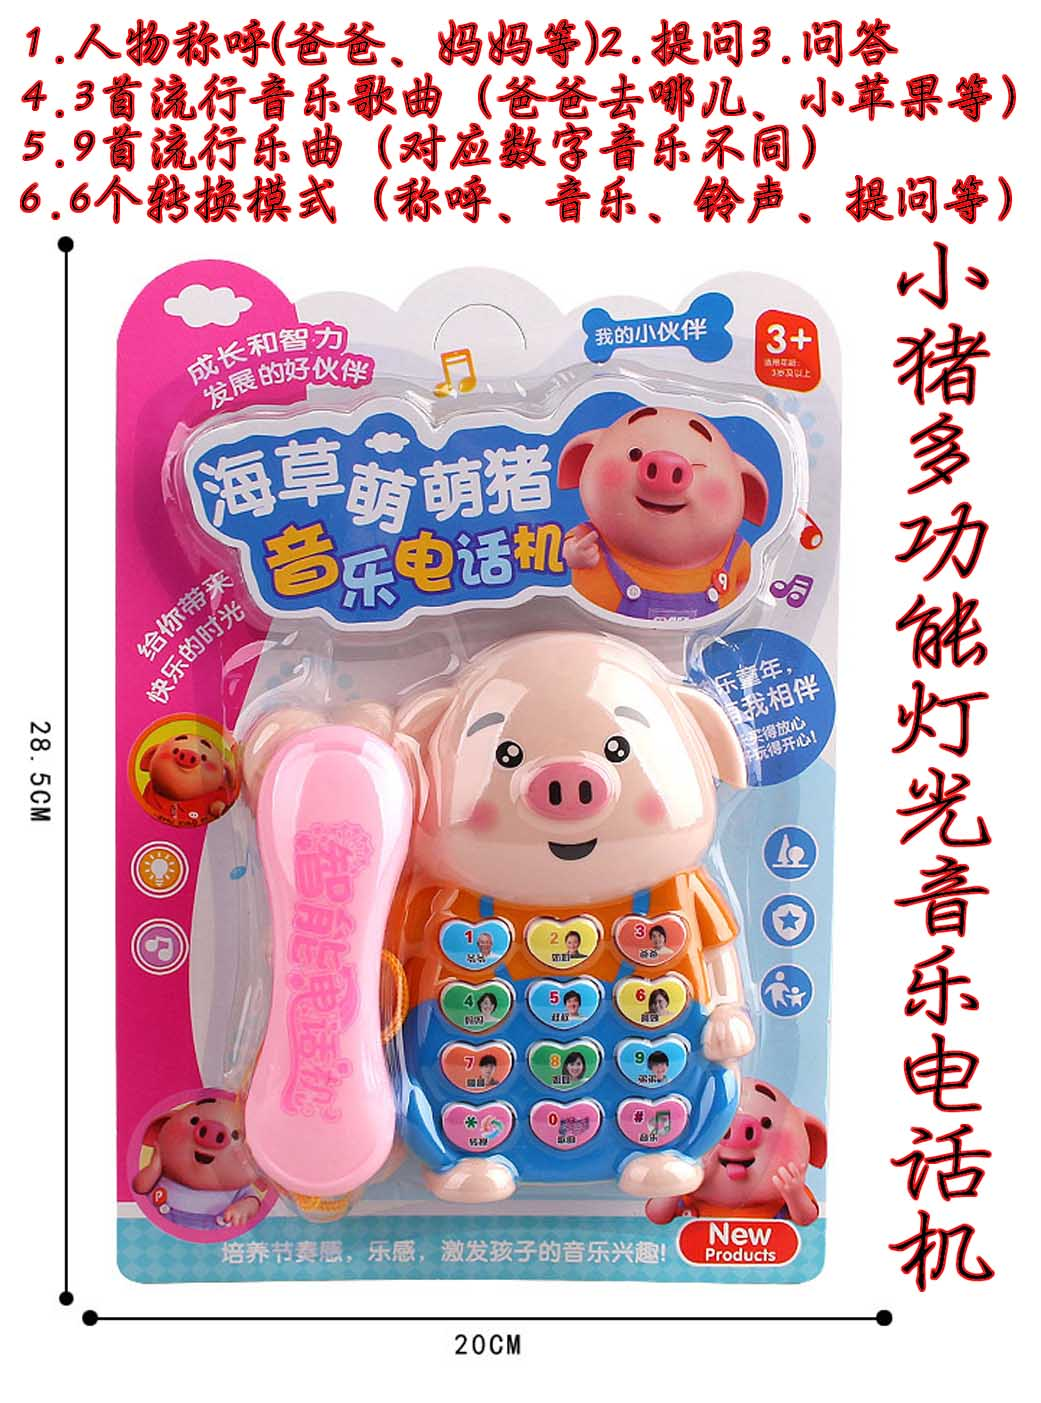 Cute seaweed pig childrens landline music multi-functional telephone baby early childhood education simulation toy